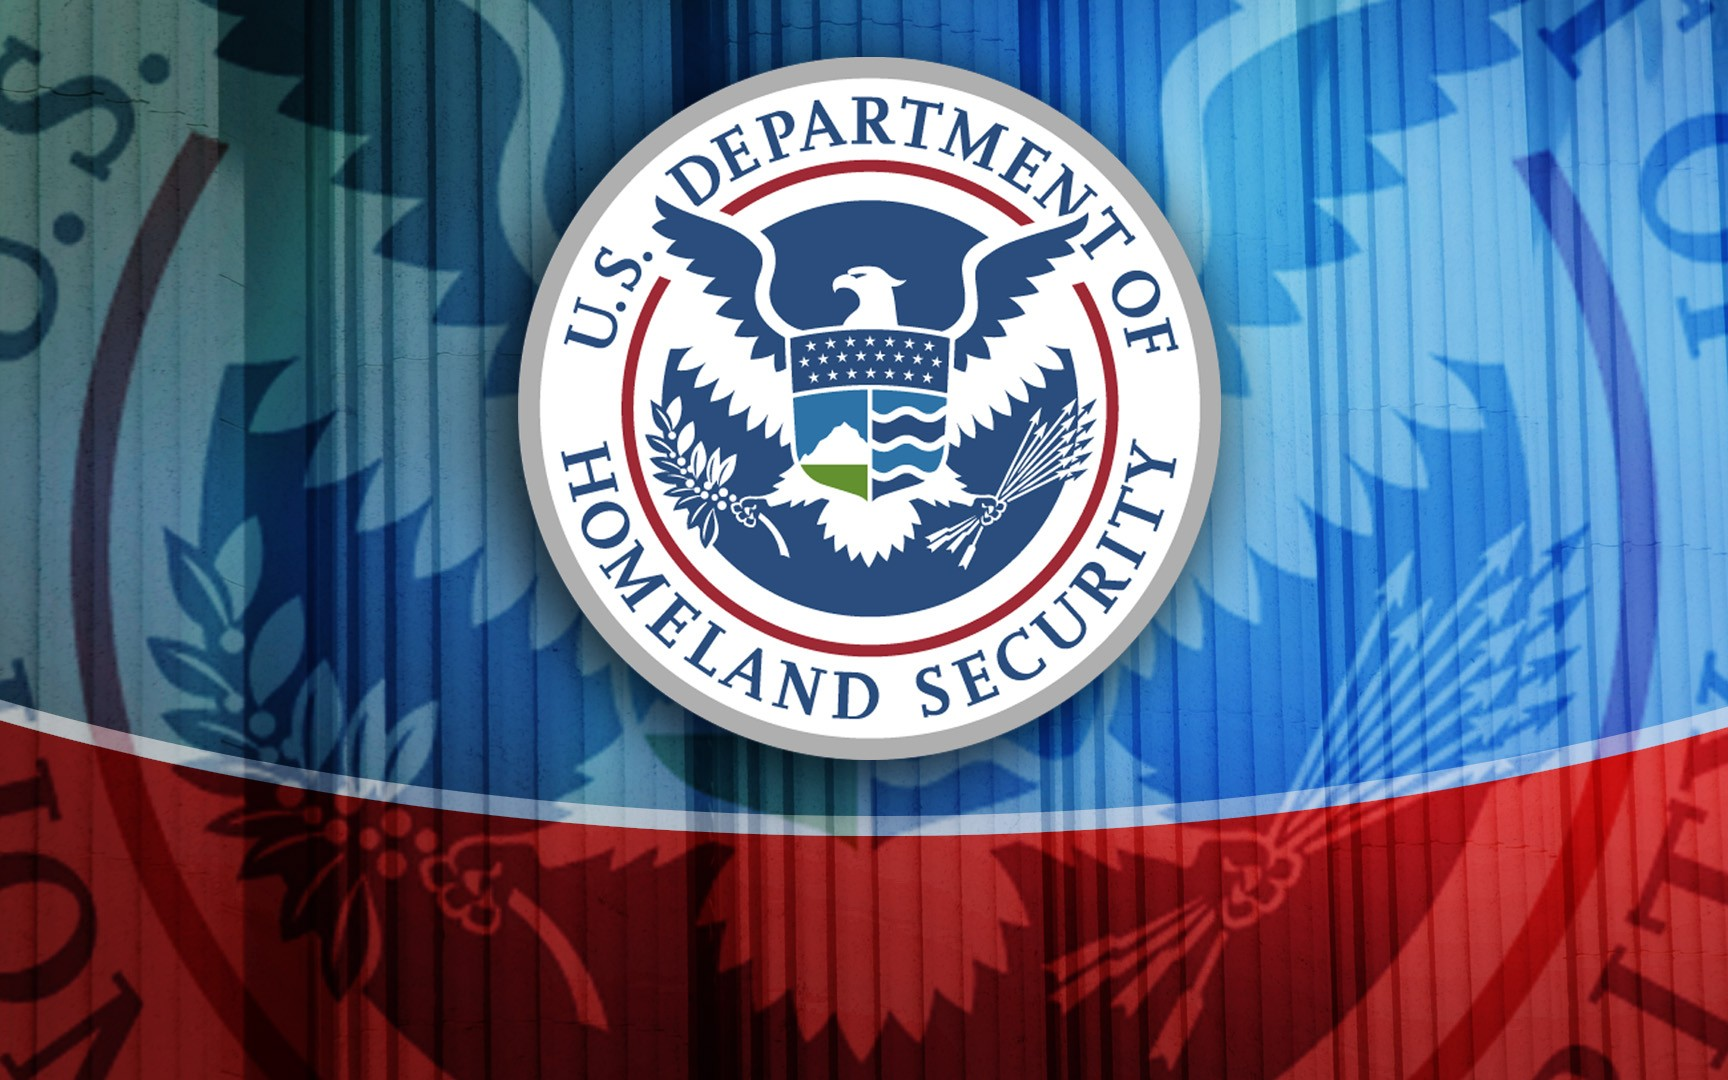 What the Department of Homeland Security Knows About Data